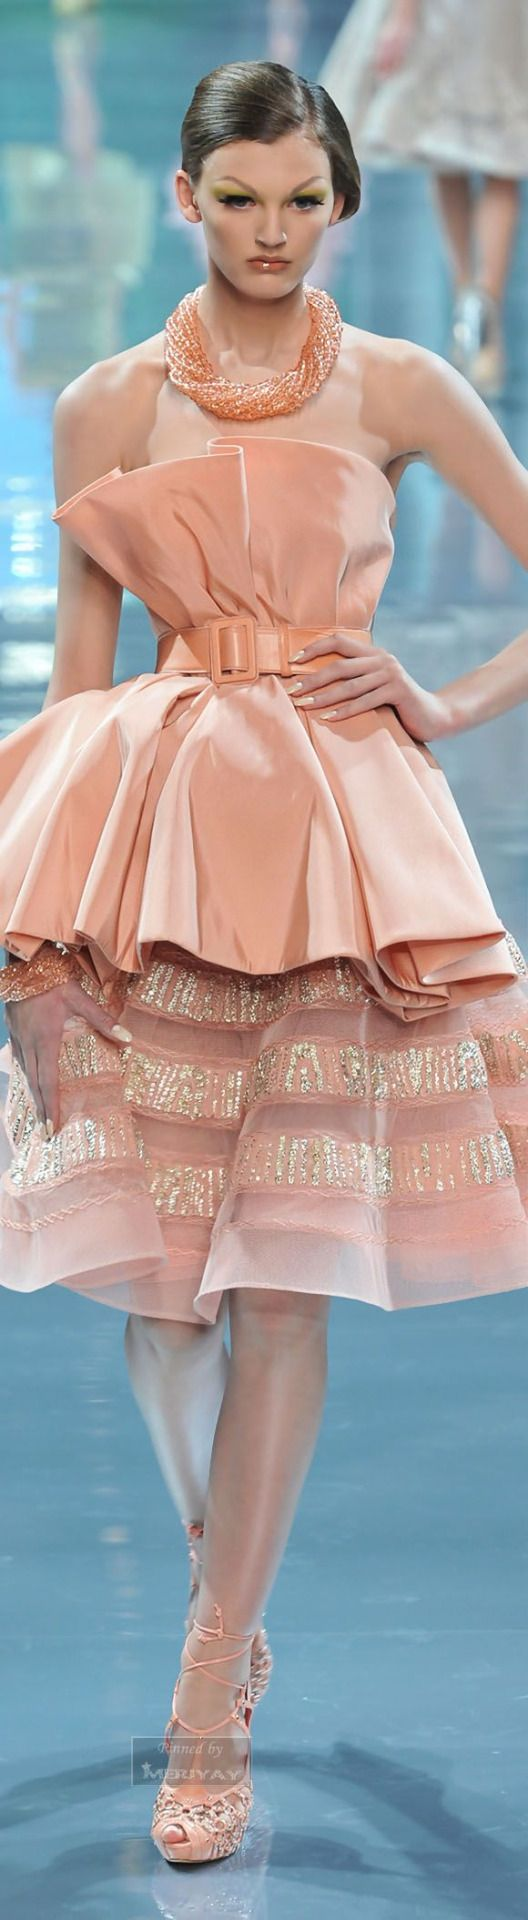 Christian Dior Couture F-08: blush ensemble.